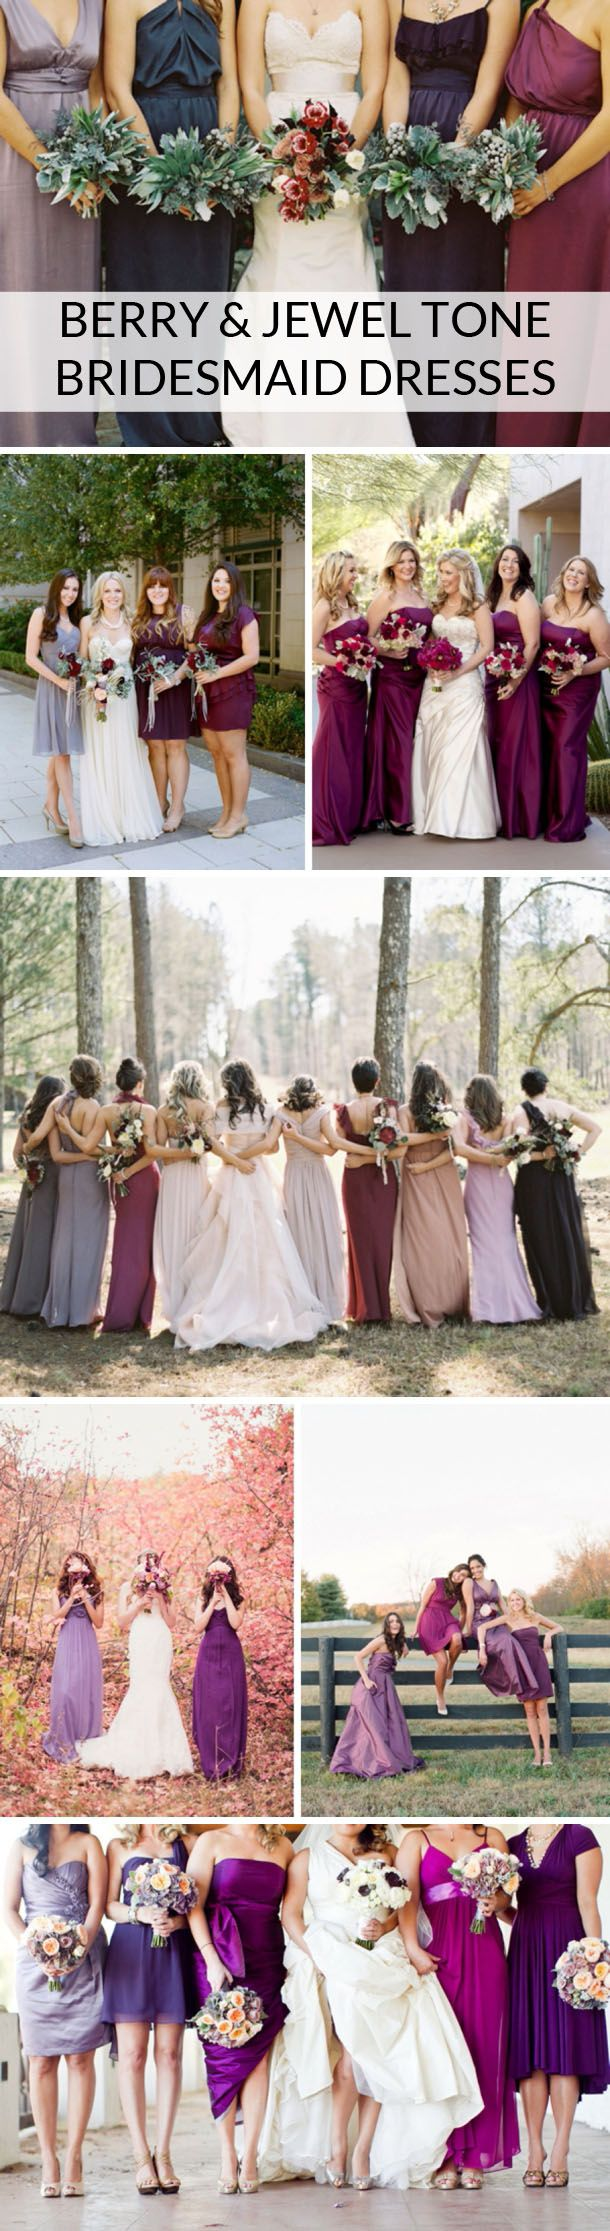 Beautiful berry & jewel tone bridesmaid dress inspiration | SouthBound Bride www.southboundbride.com/berry-jewel-tone-bridesmaid-dresses  Image credits: Jill Thomas // Austin Gros // Laura Segall // Eric Kelley // Alixanne Loosle // Elizabeth Messina // The Collective